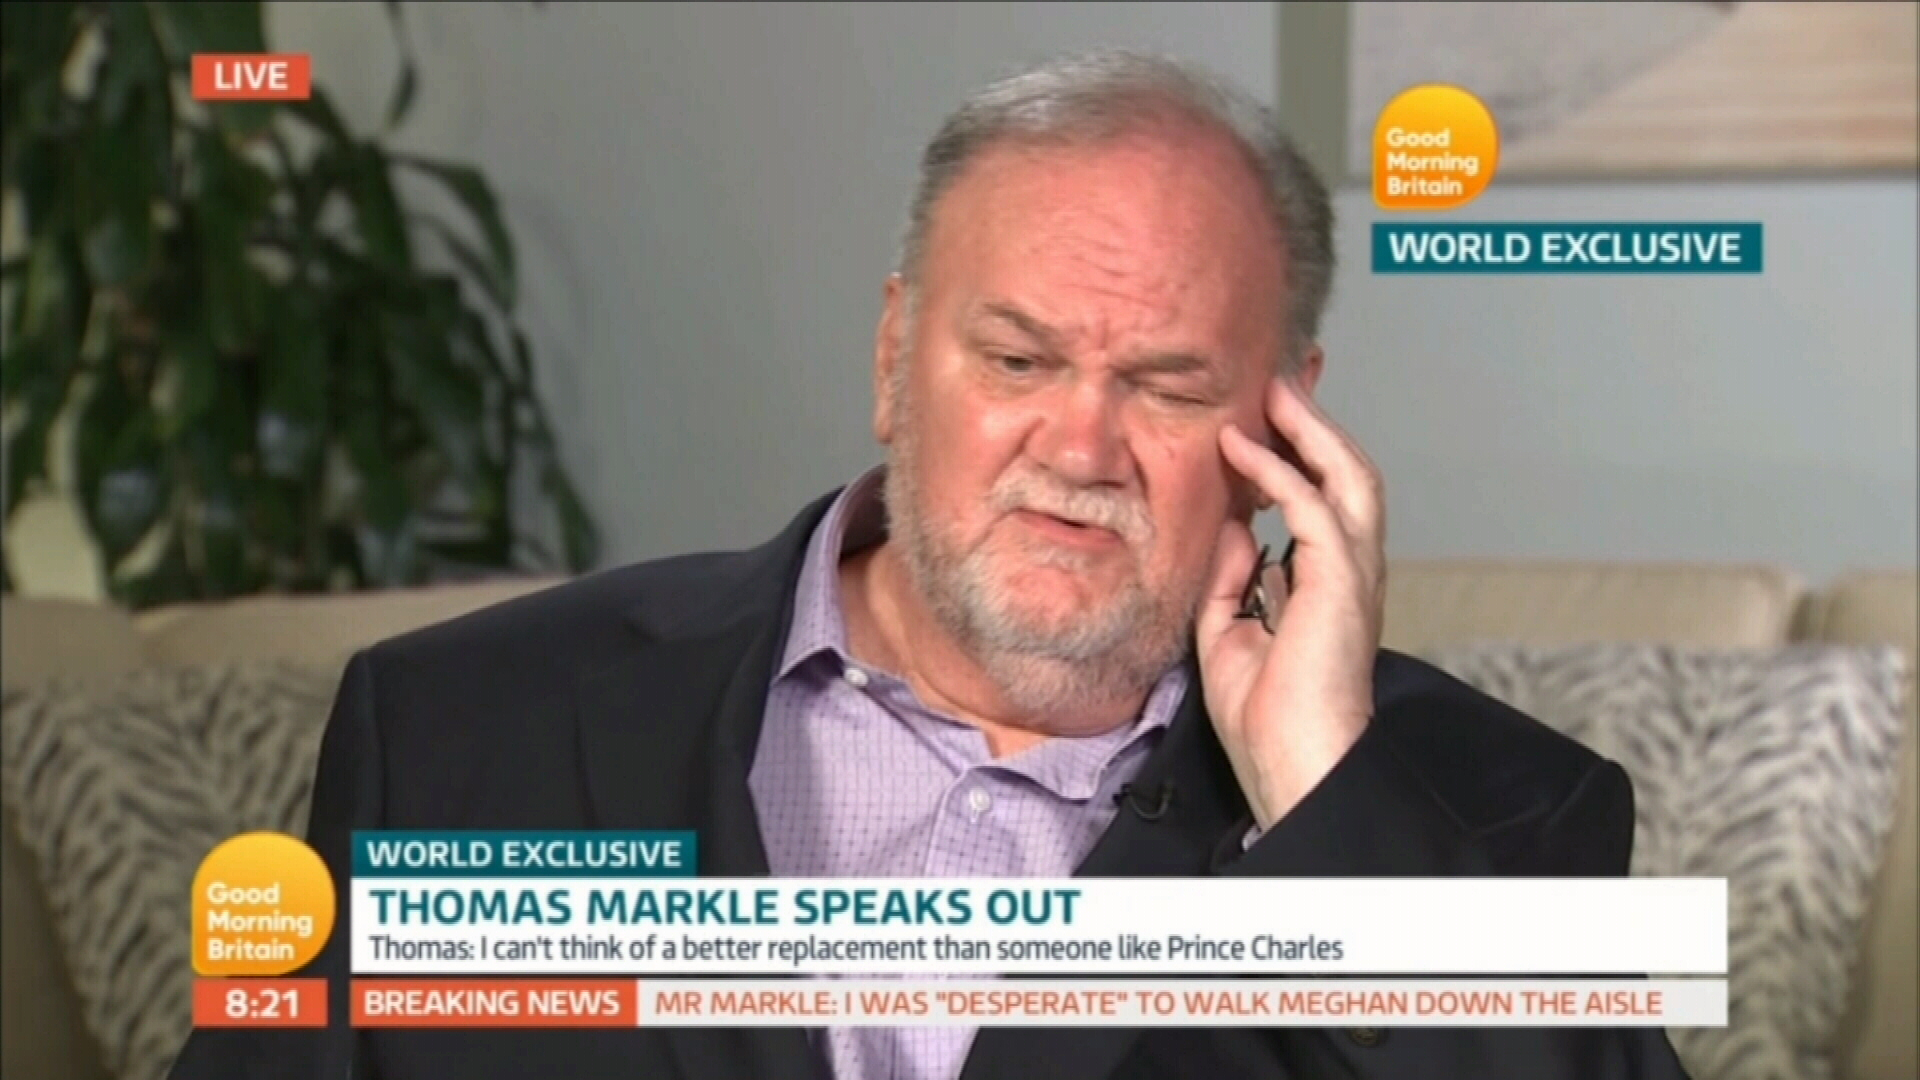 Thomas Markle explains his absence from Royal wedding